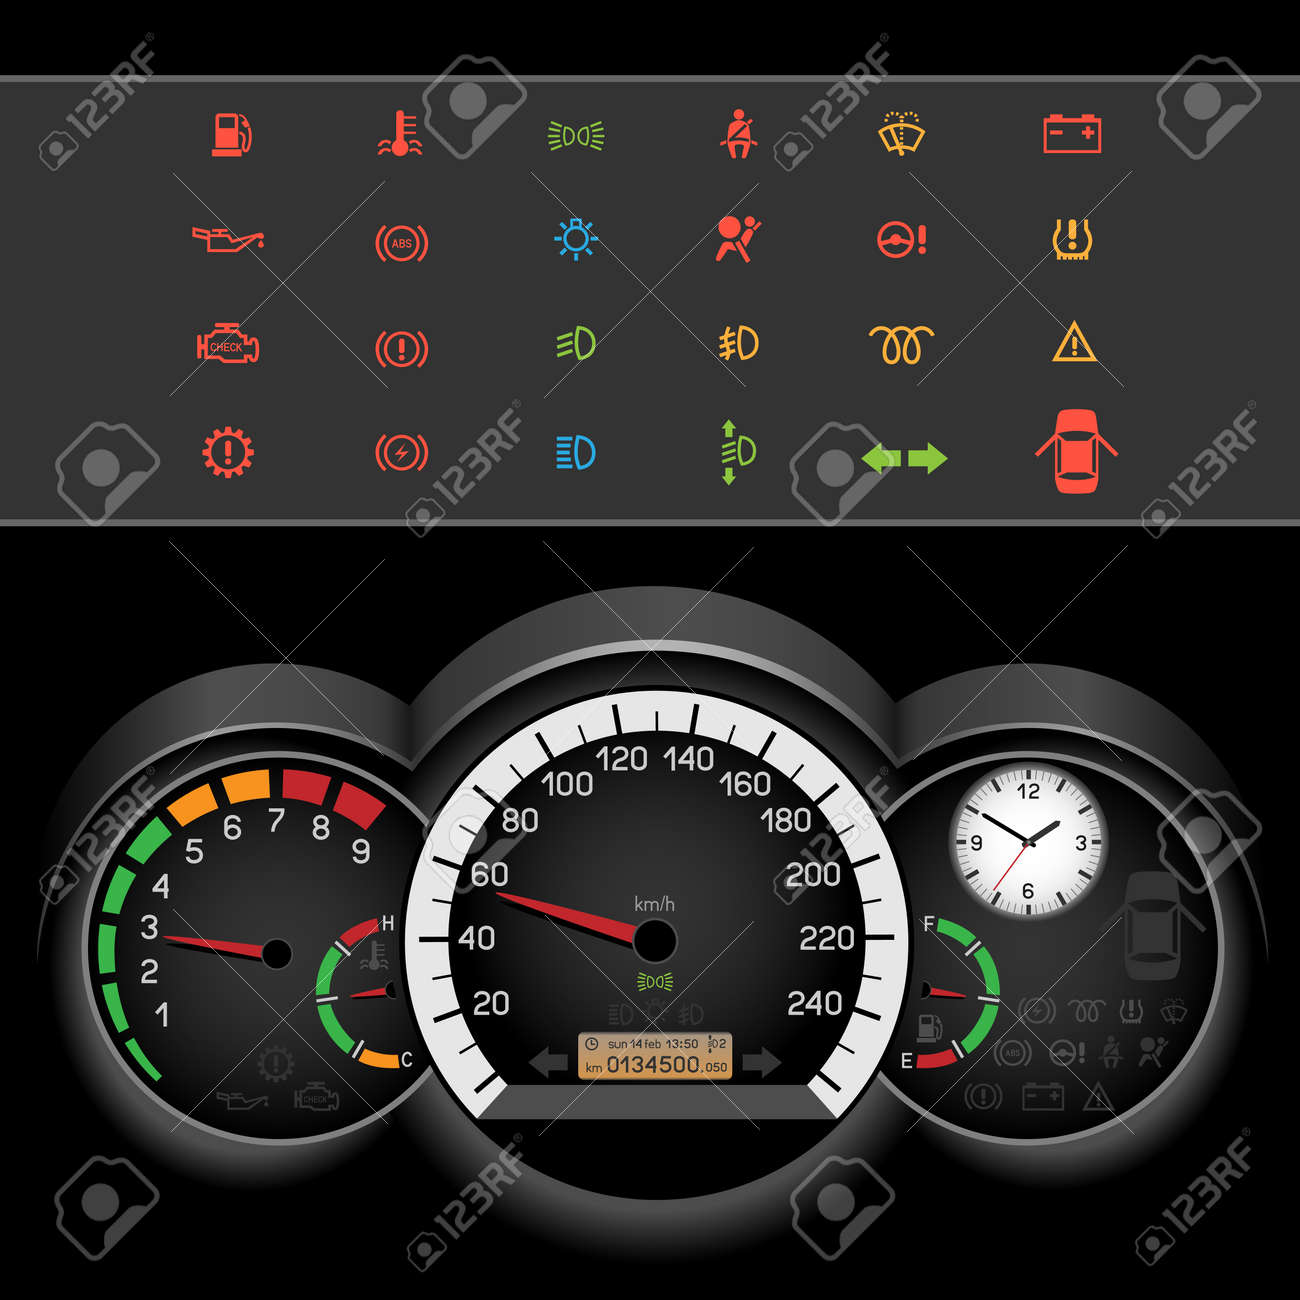 Car Control Panel Night Interface On Black Background Car - Car image sign of dashboardcar dashboard icons stock images royaltyfree imagesvectors